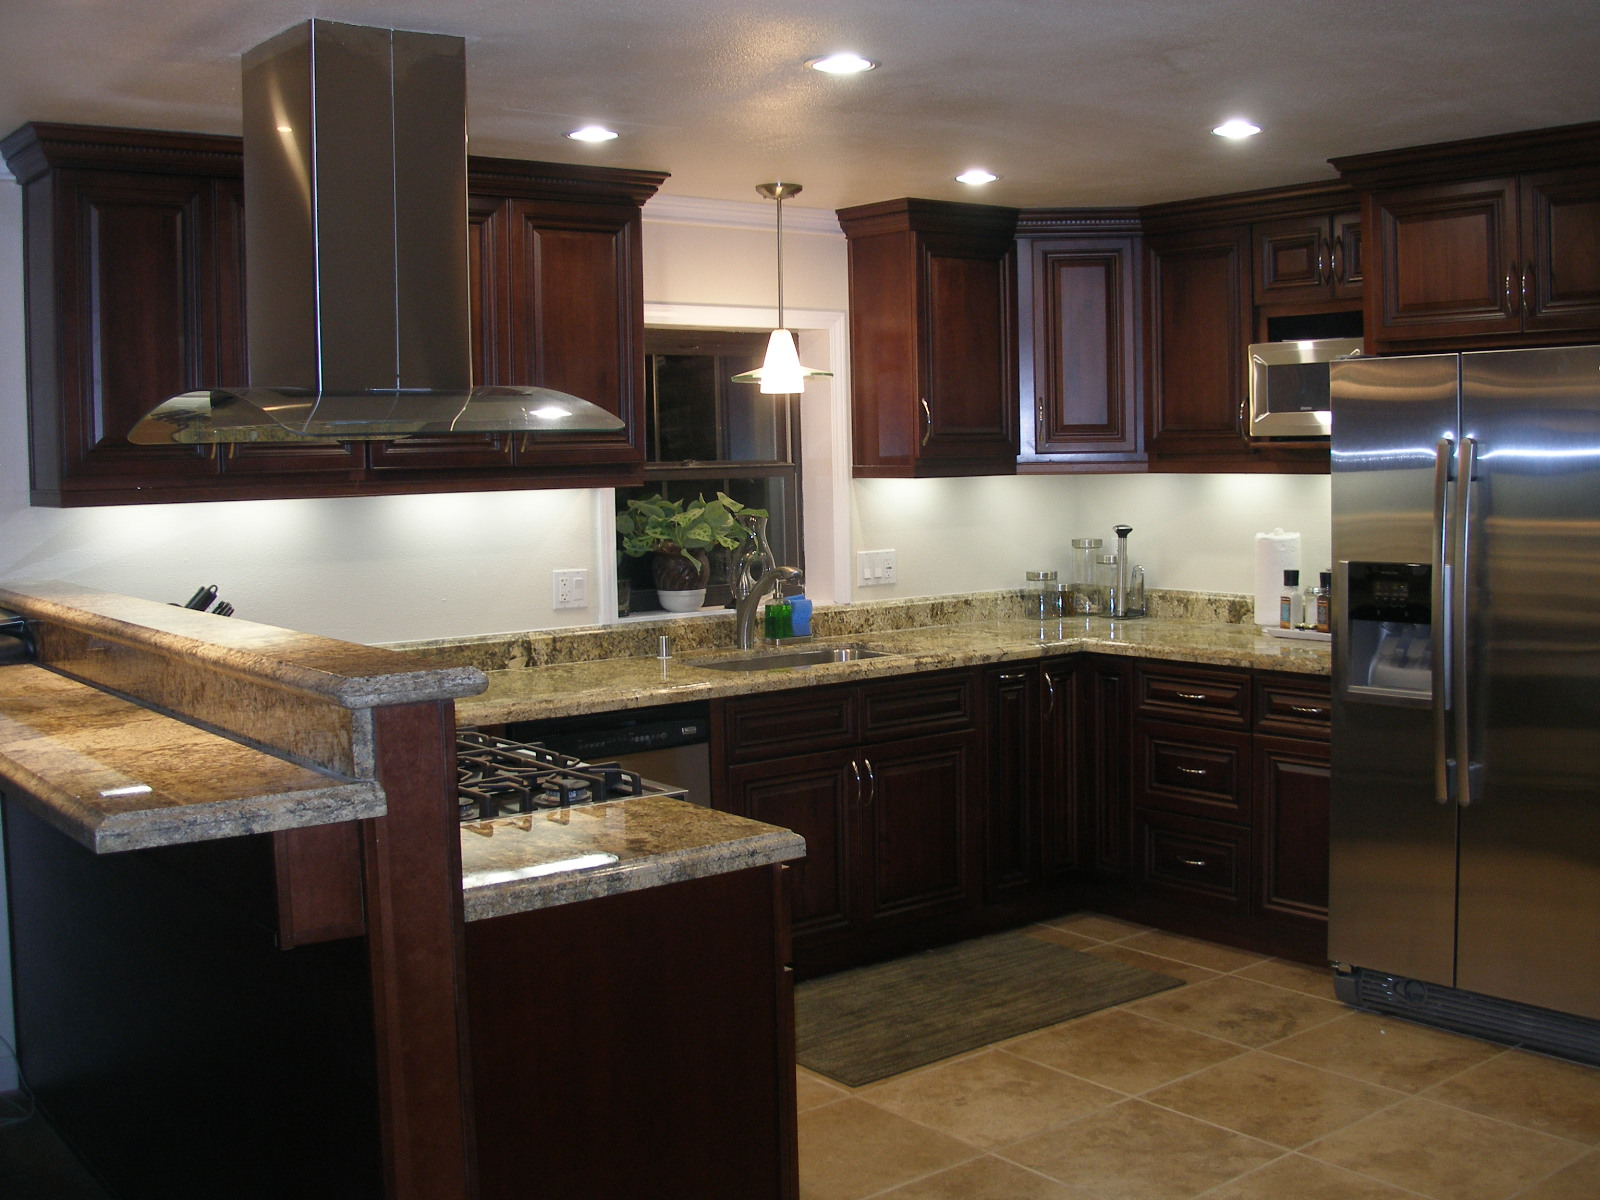 Kitchen remodeling brad t jones construction for Kitchen renovation ideas images